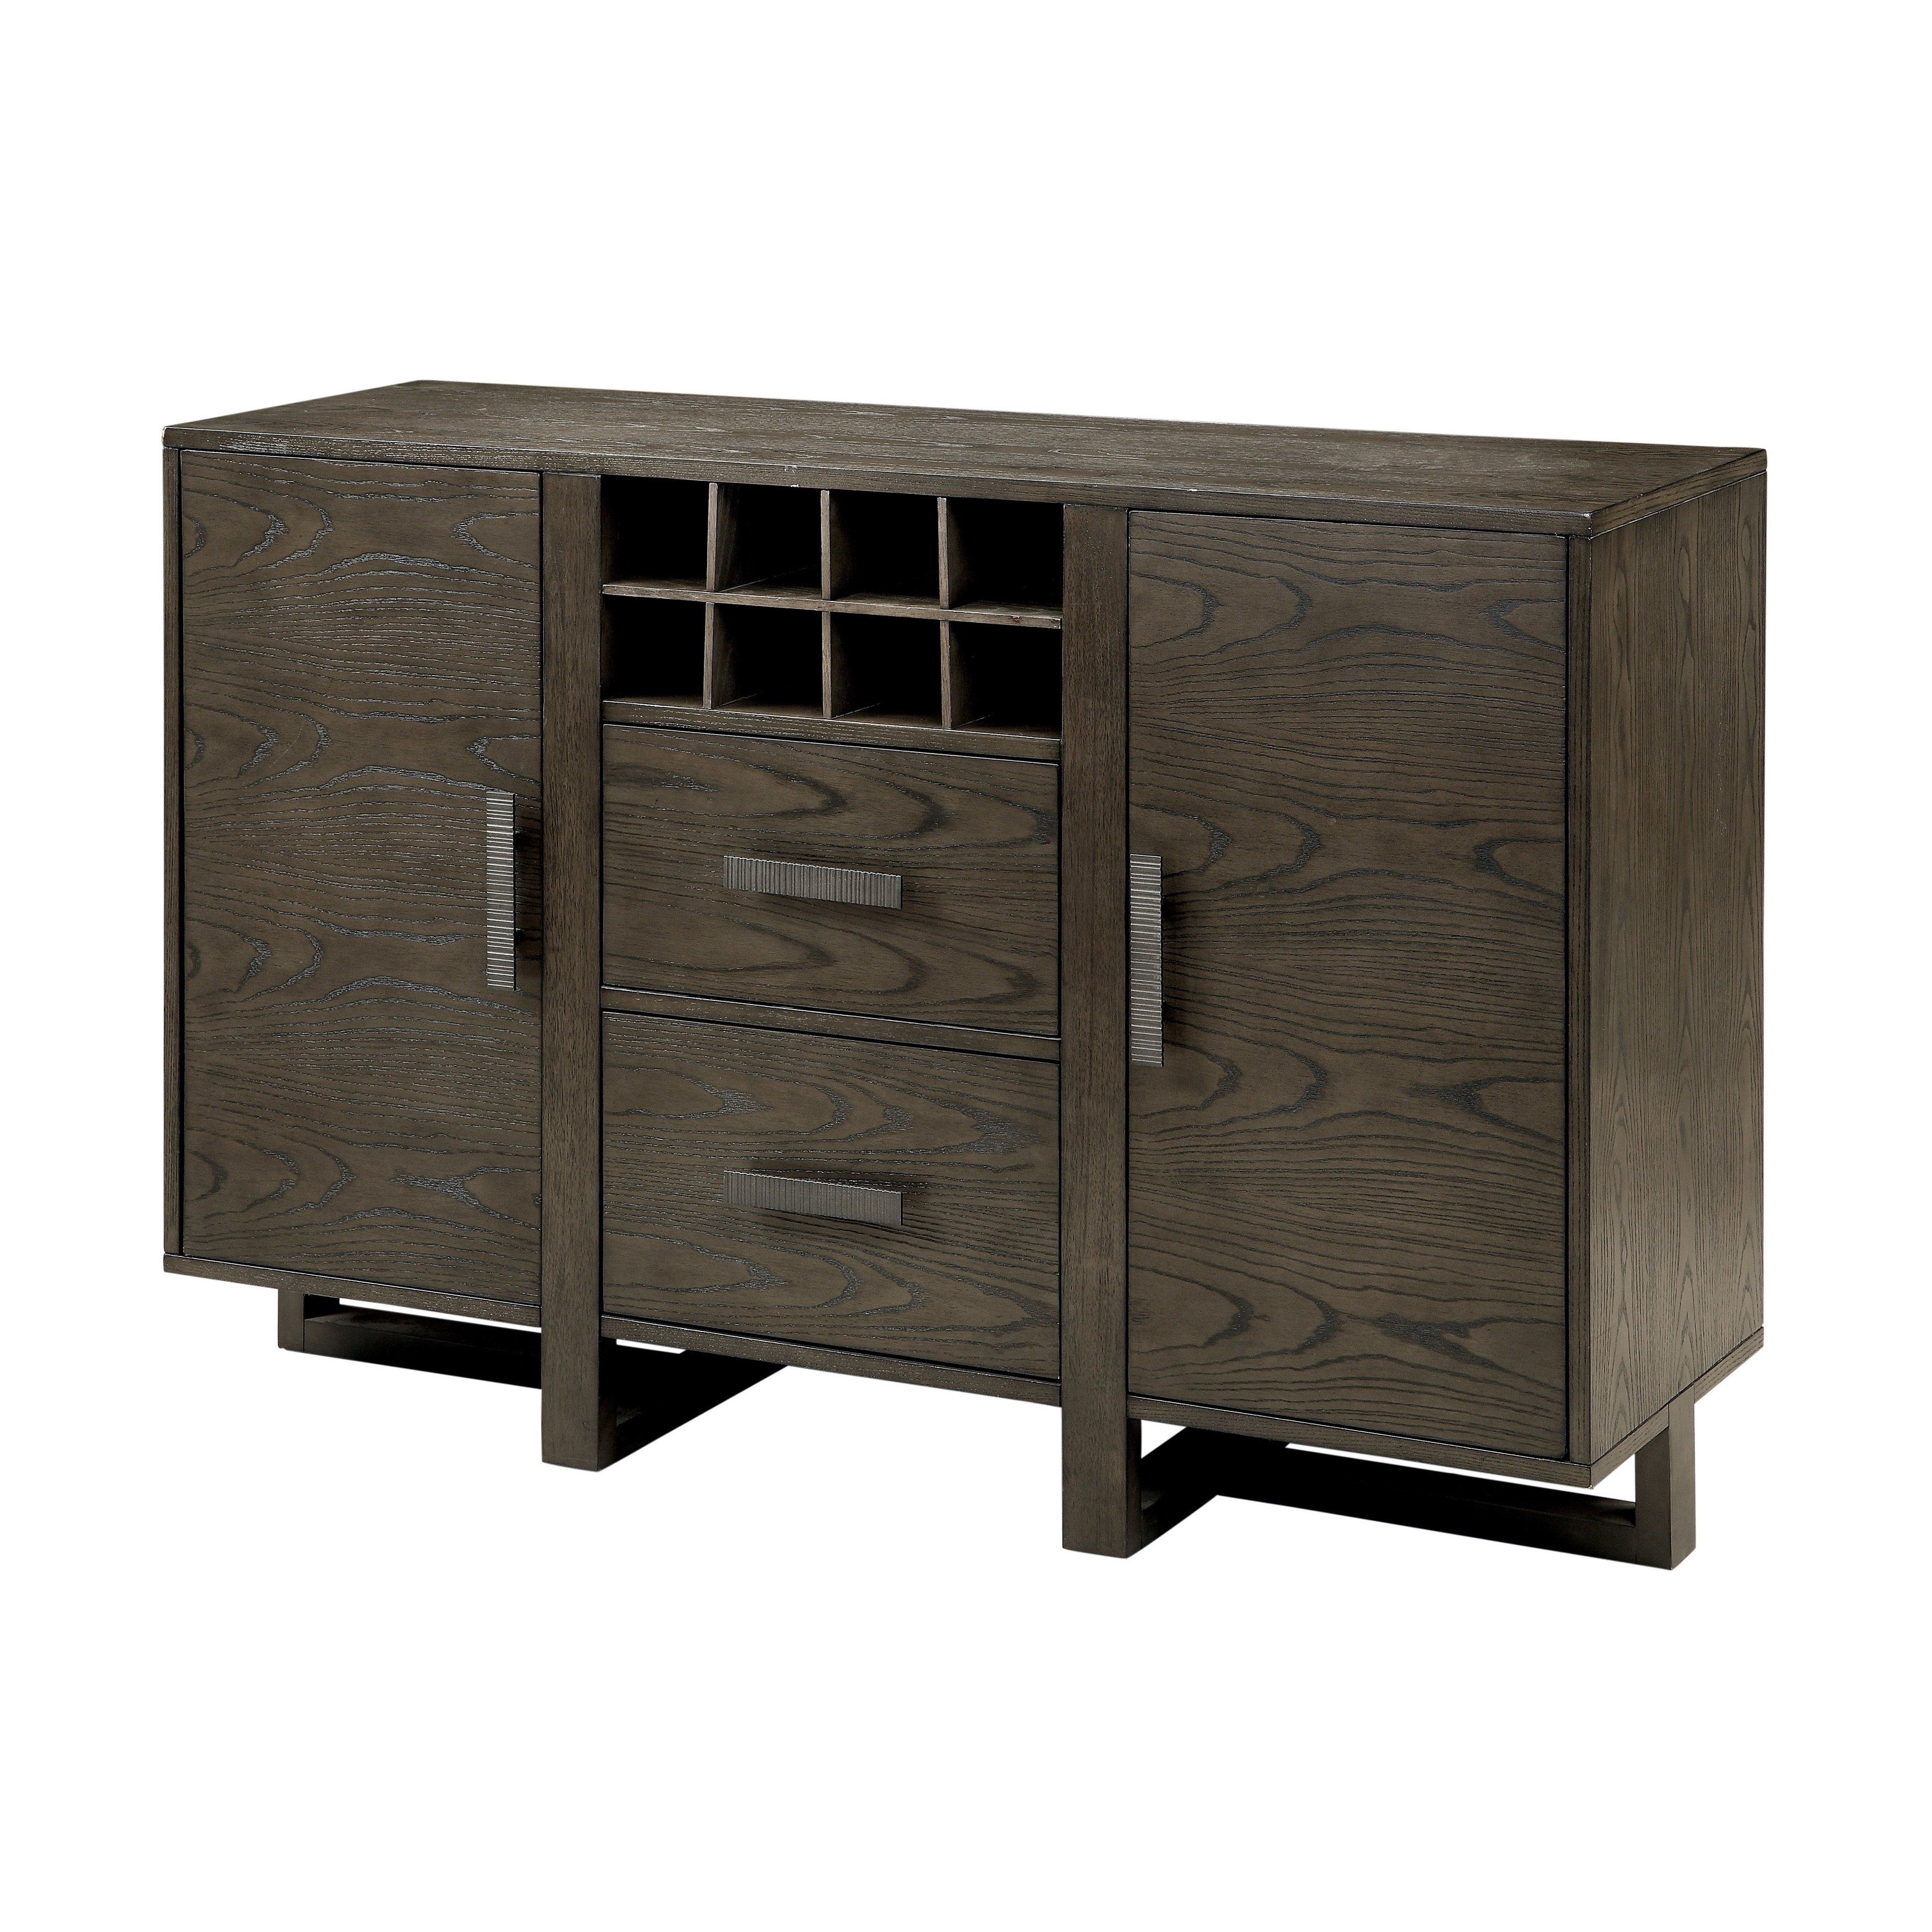 Shop Furniture Of America Basson Rustic Grey Dining Server - Free with Norwood Sideboards (Image 20 of 30)